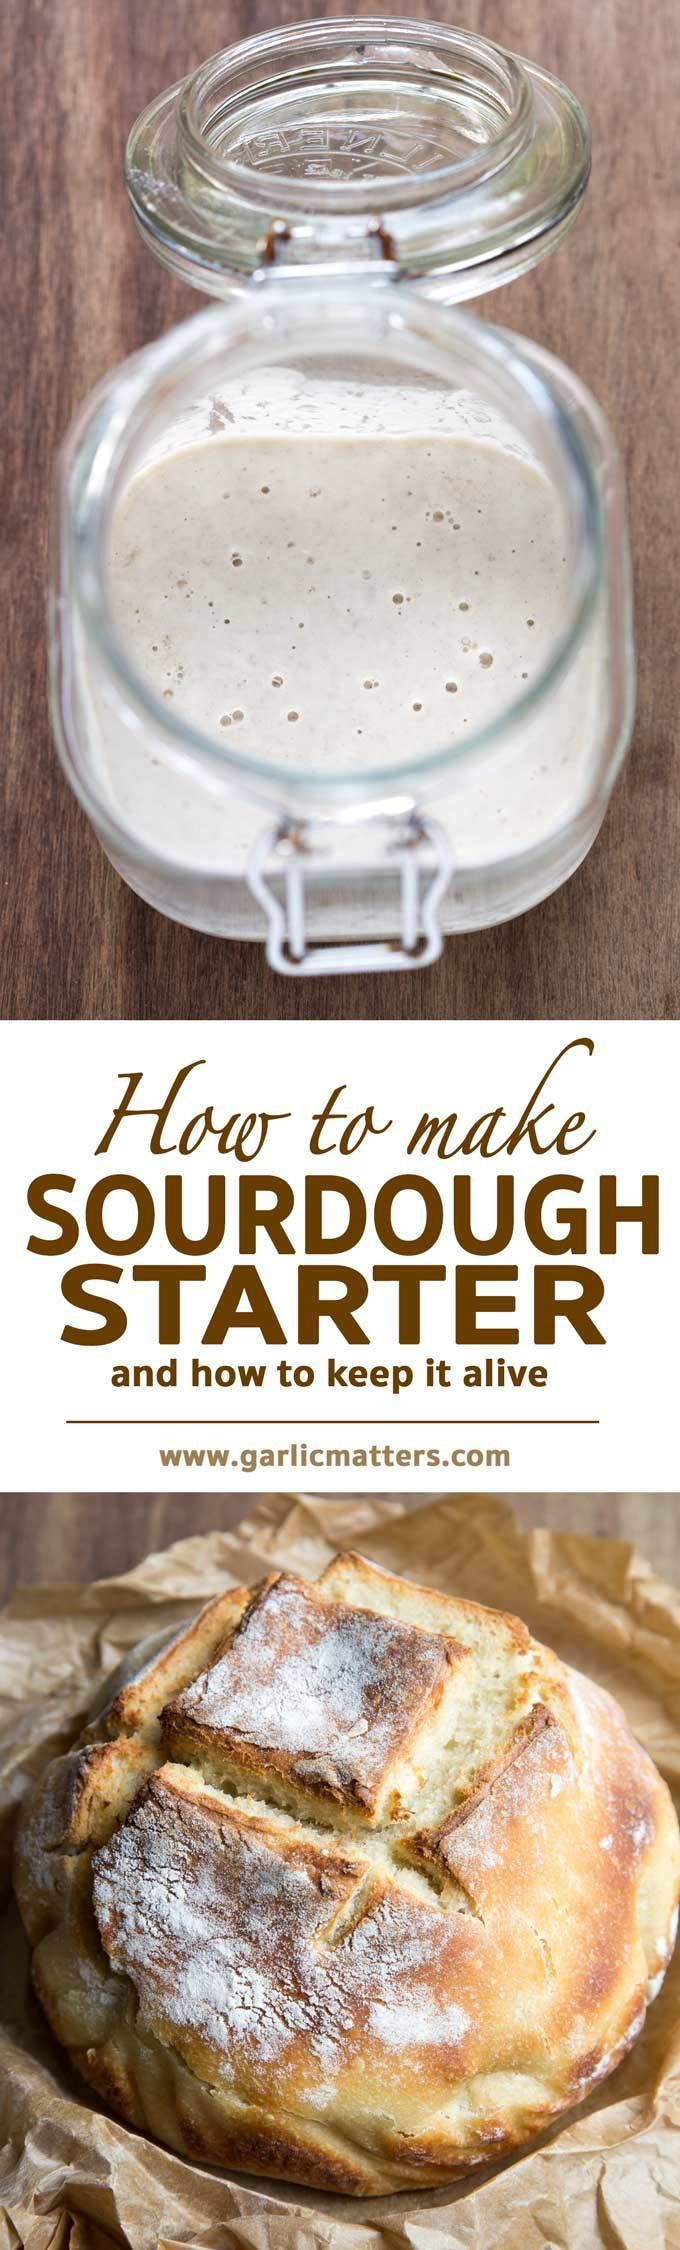 How to make and keep sourdough starter | Recipe ...